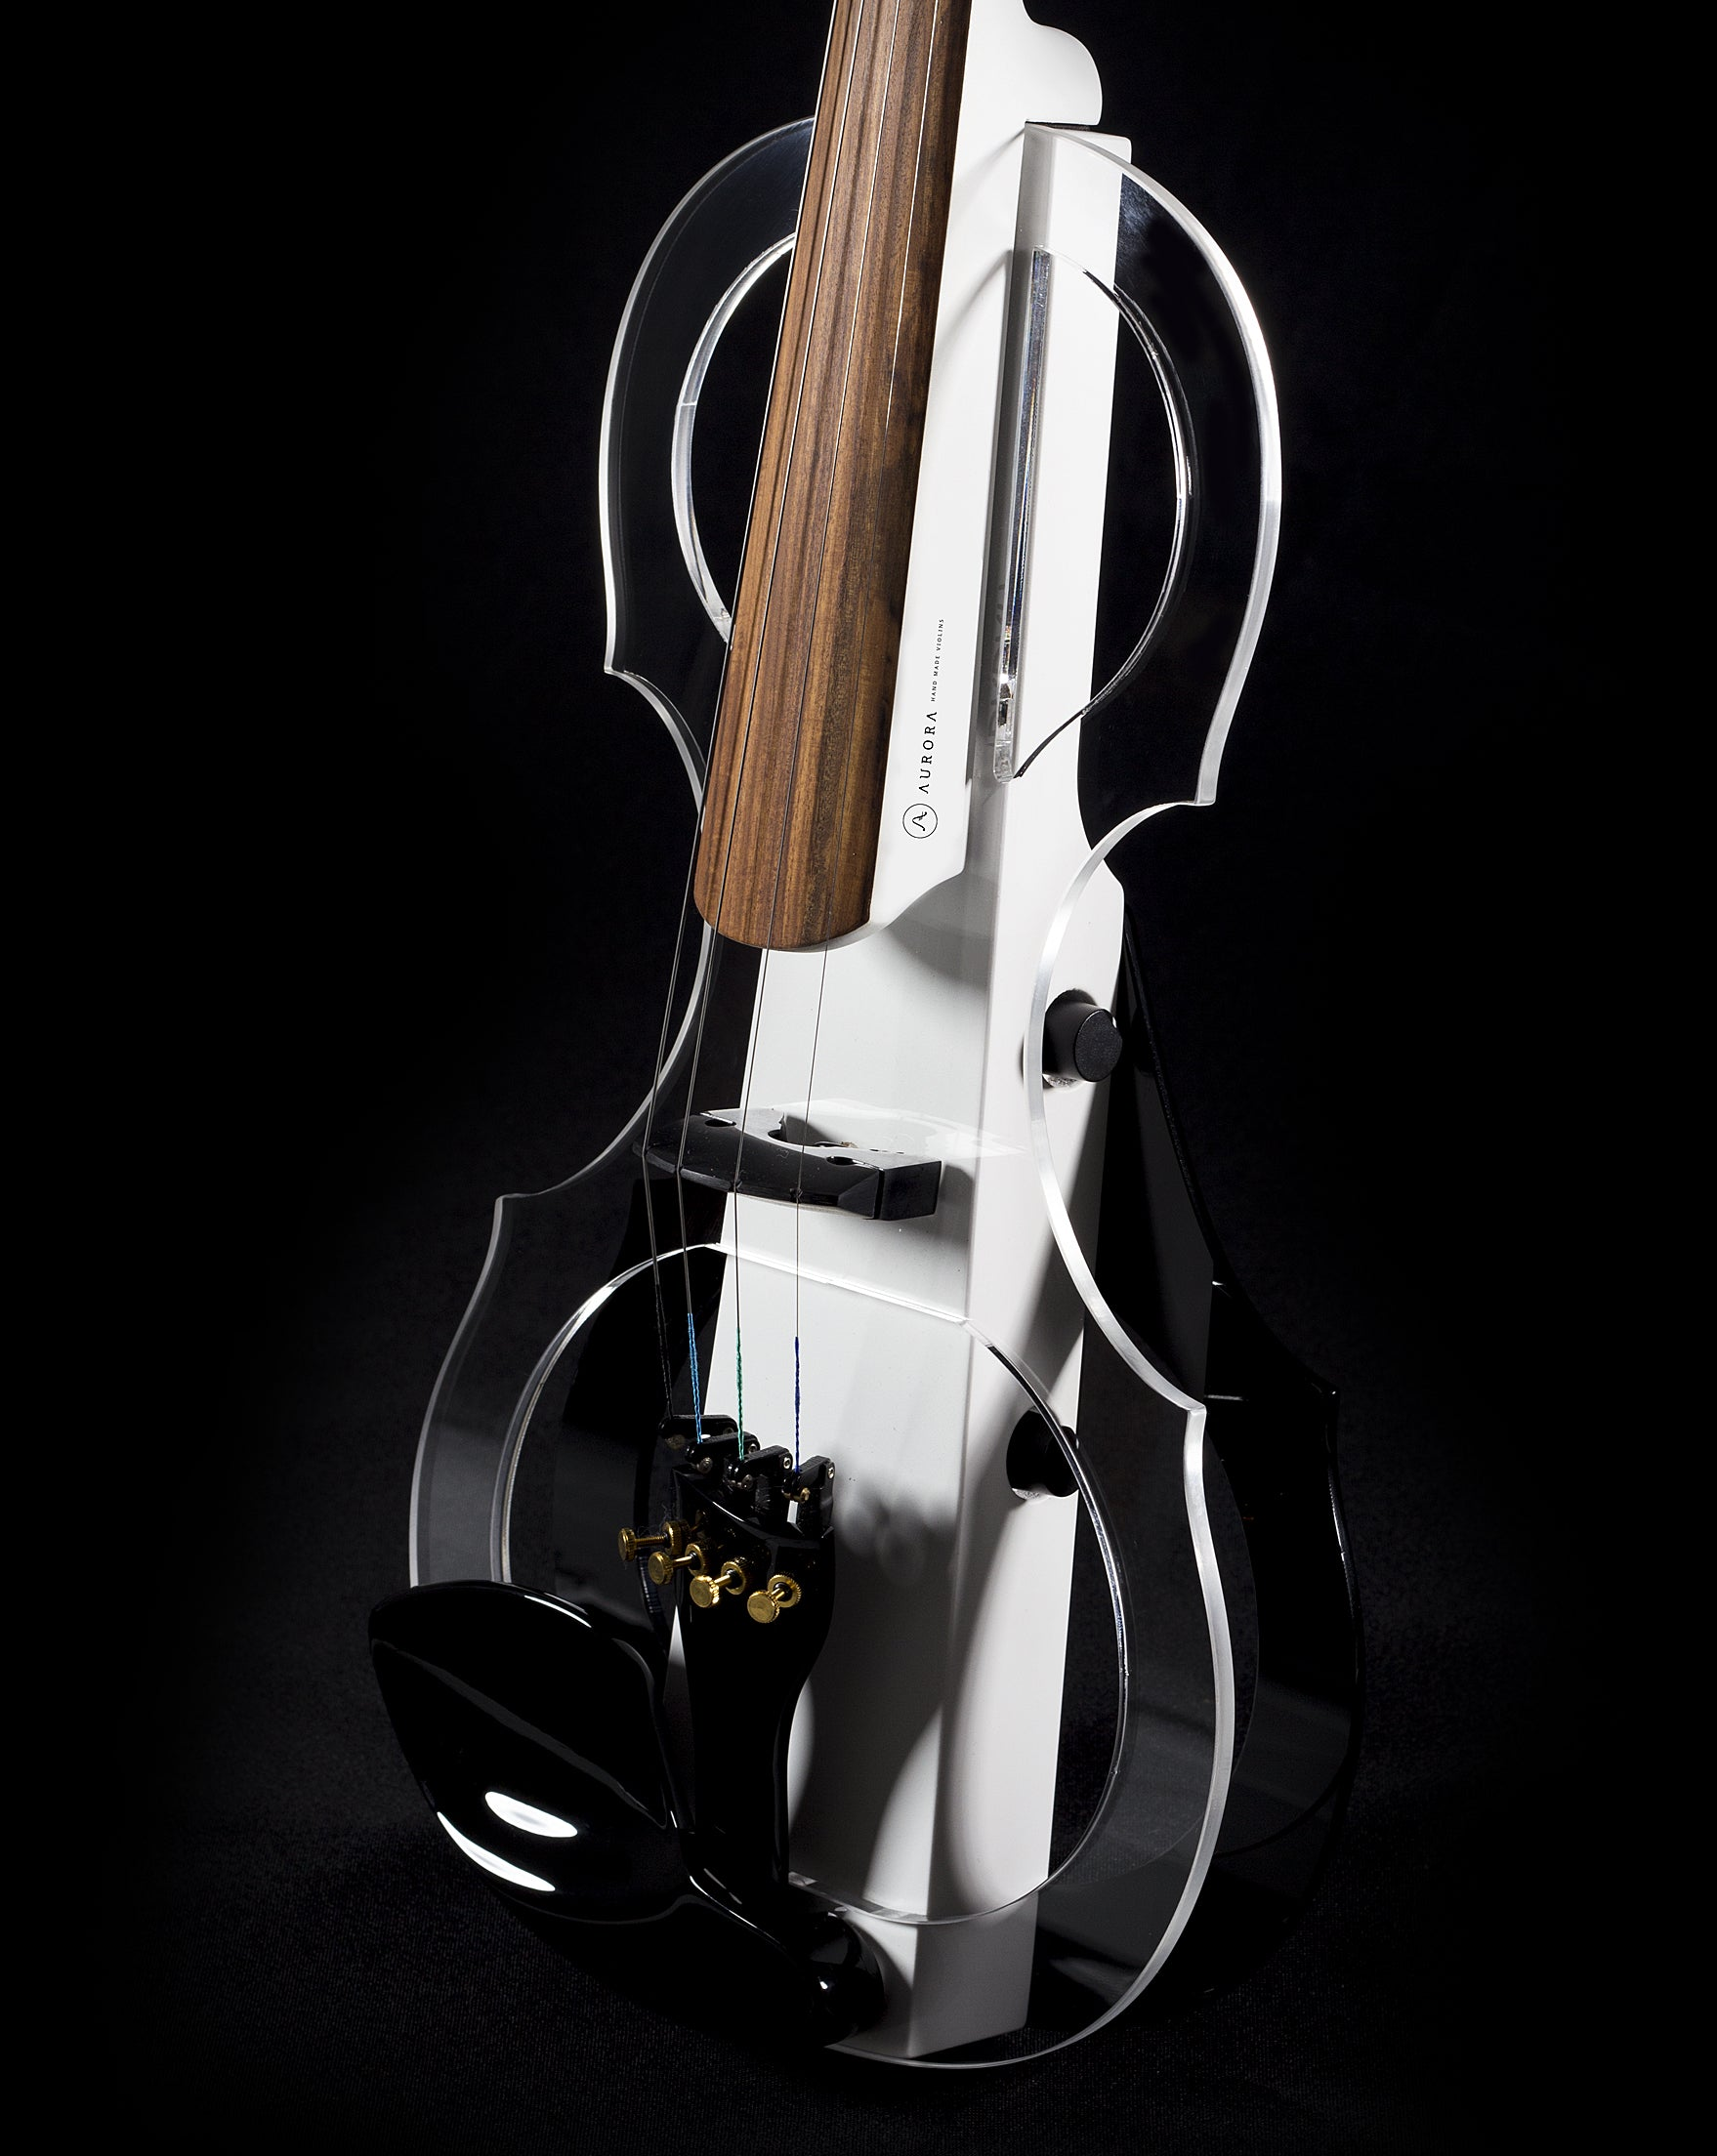 Aurora Silhouette Electric Violin with built-in leds